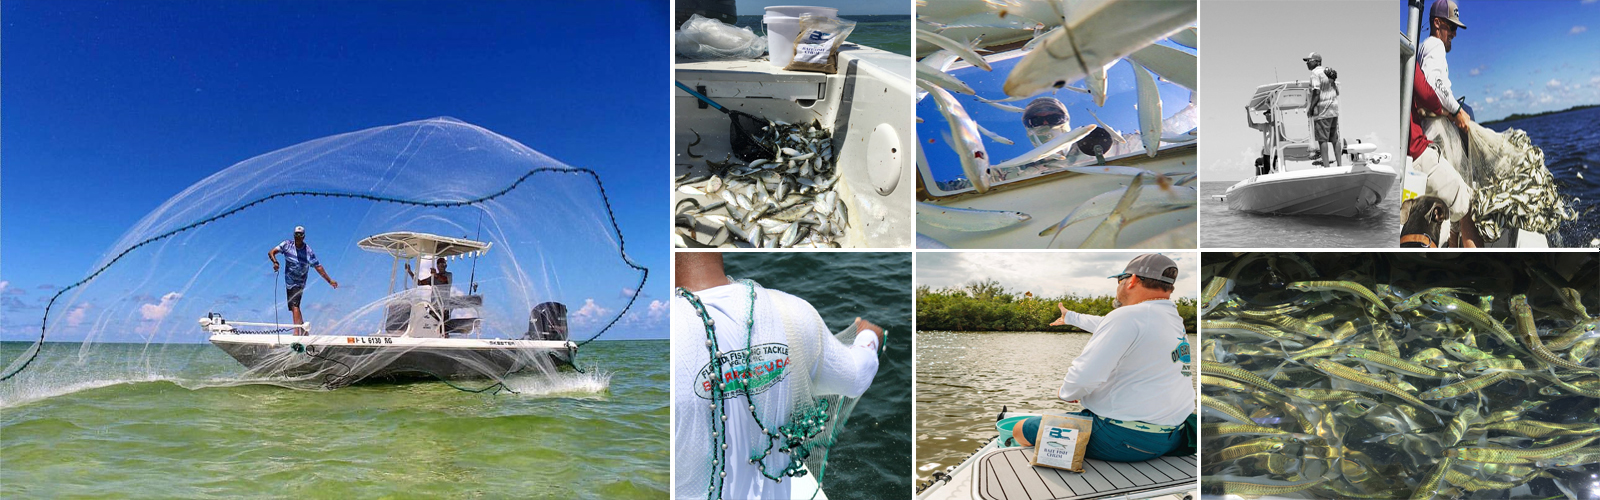 Barracuda brand is the best cast net for the money